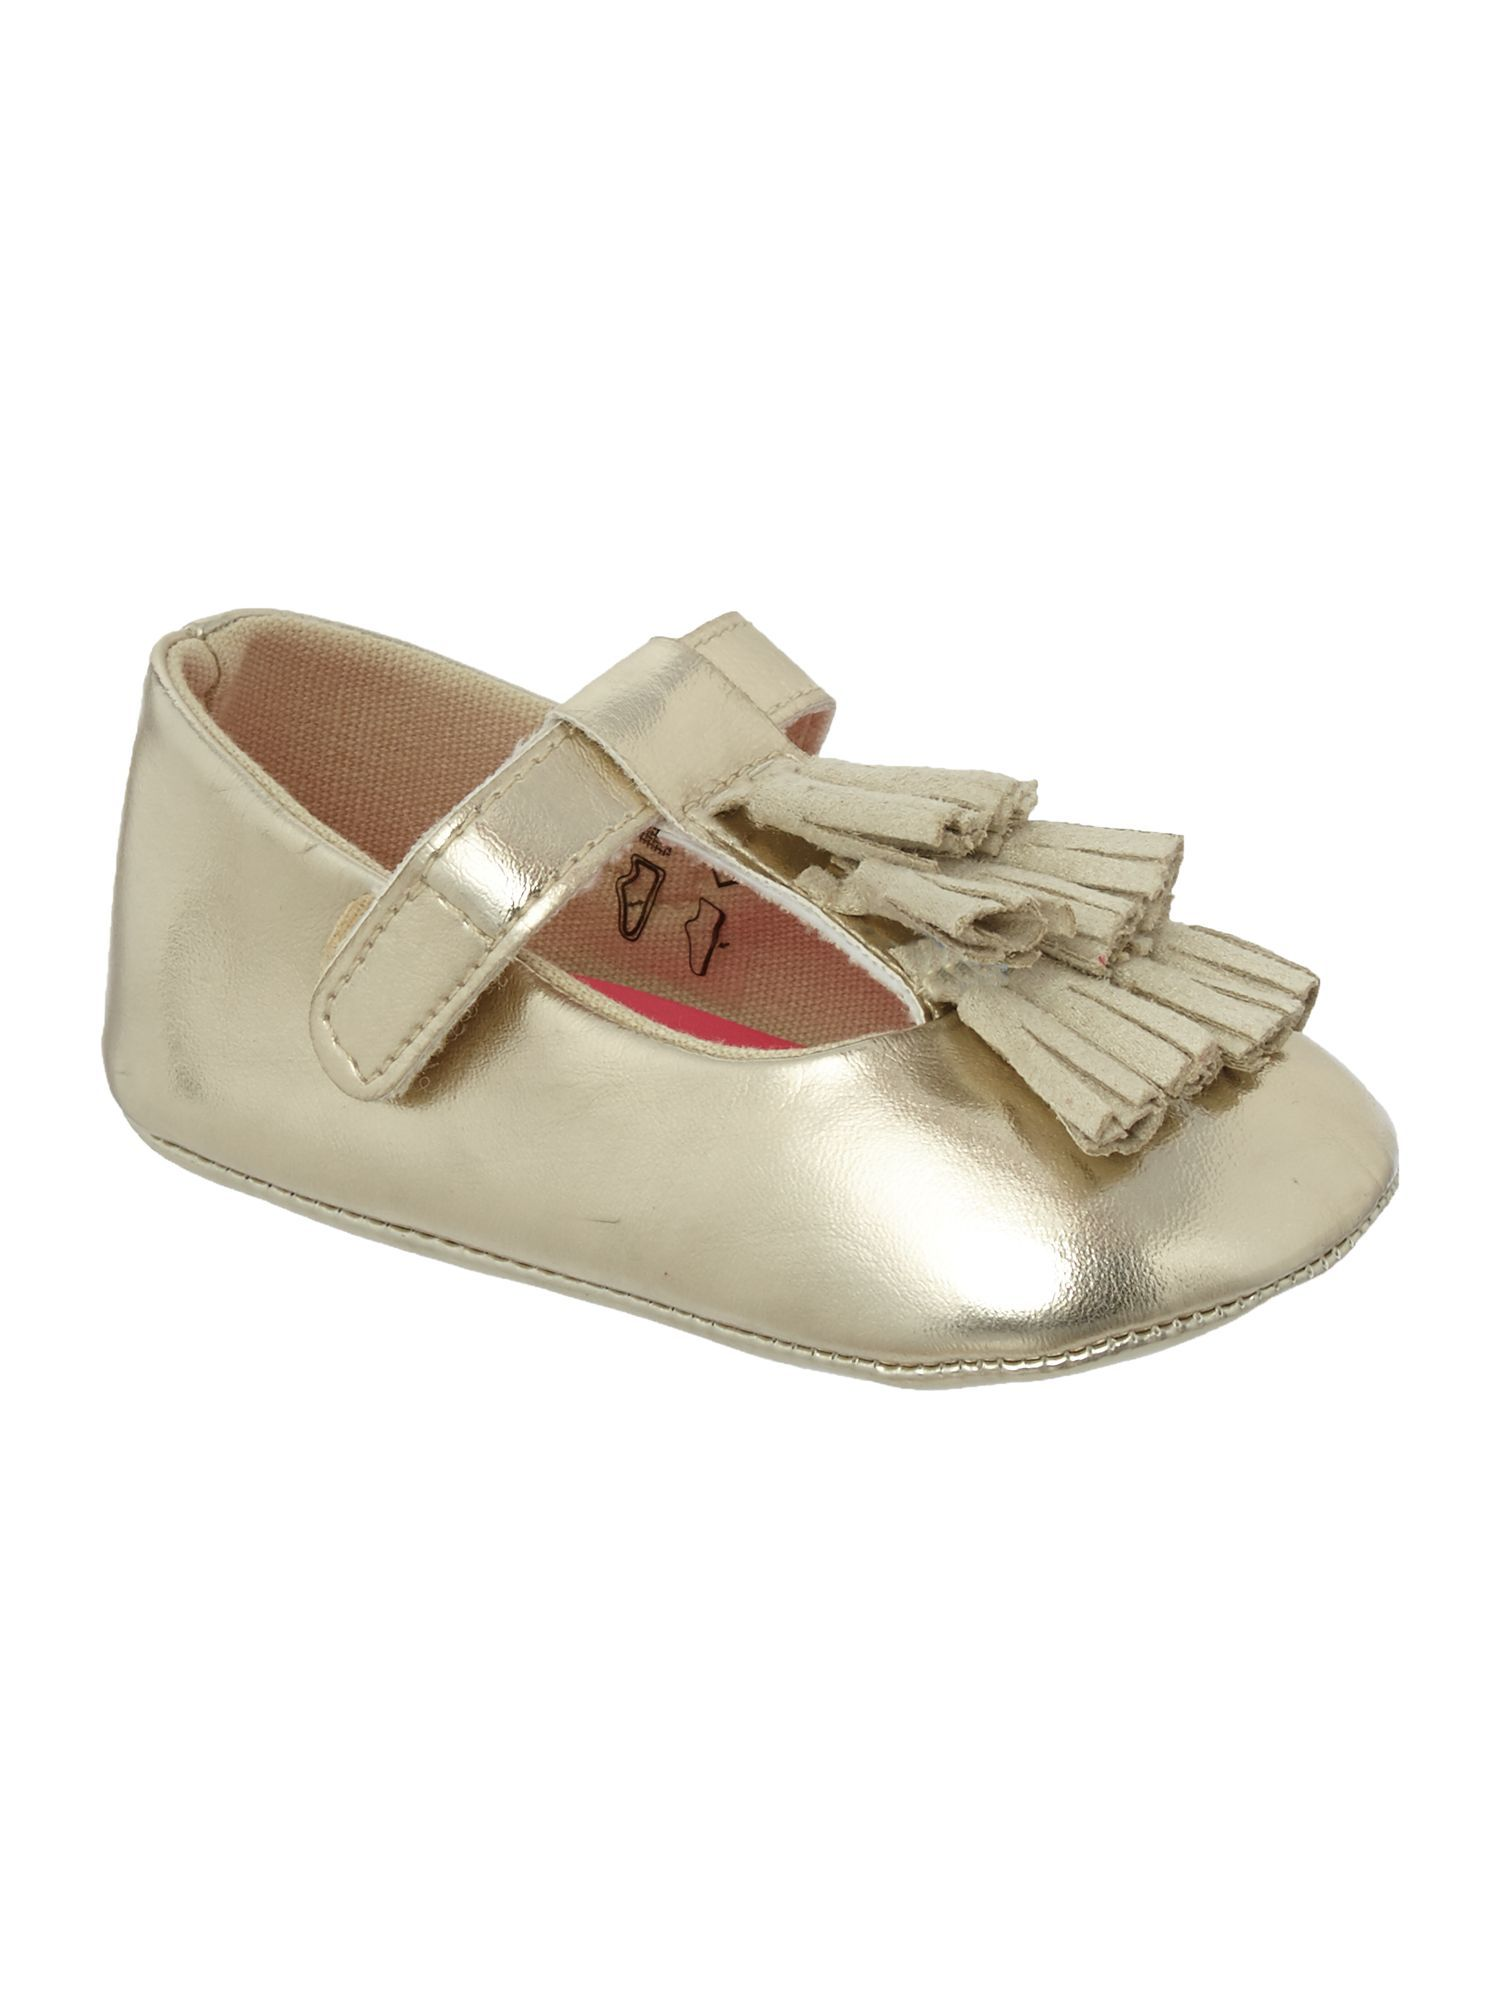 Billieblush Baby girls shoes with tassles Metallic